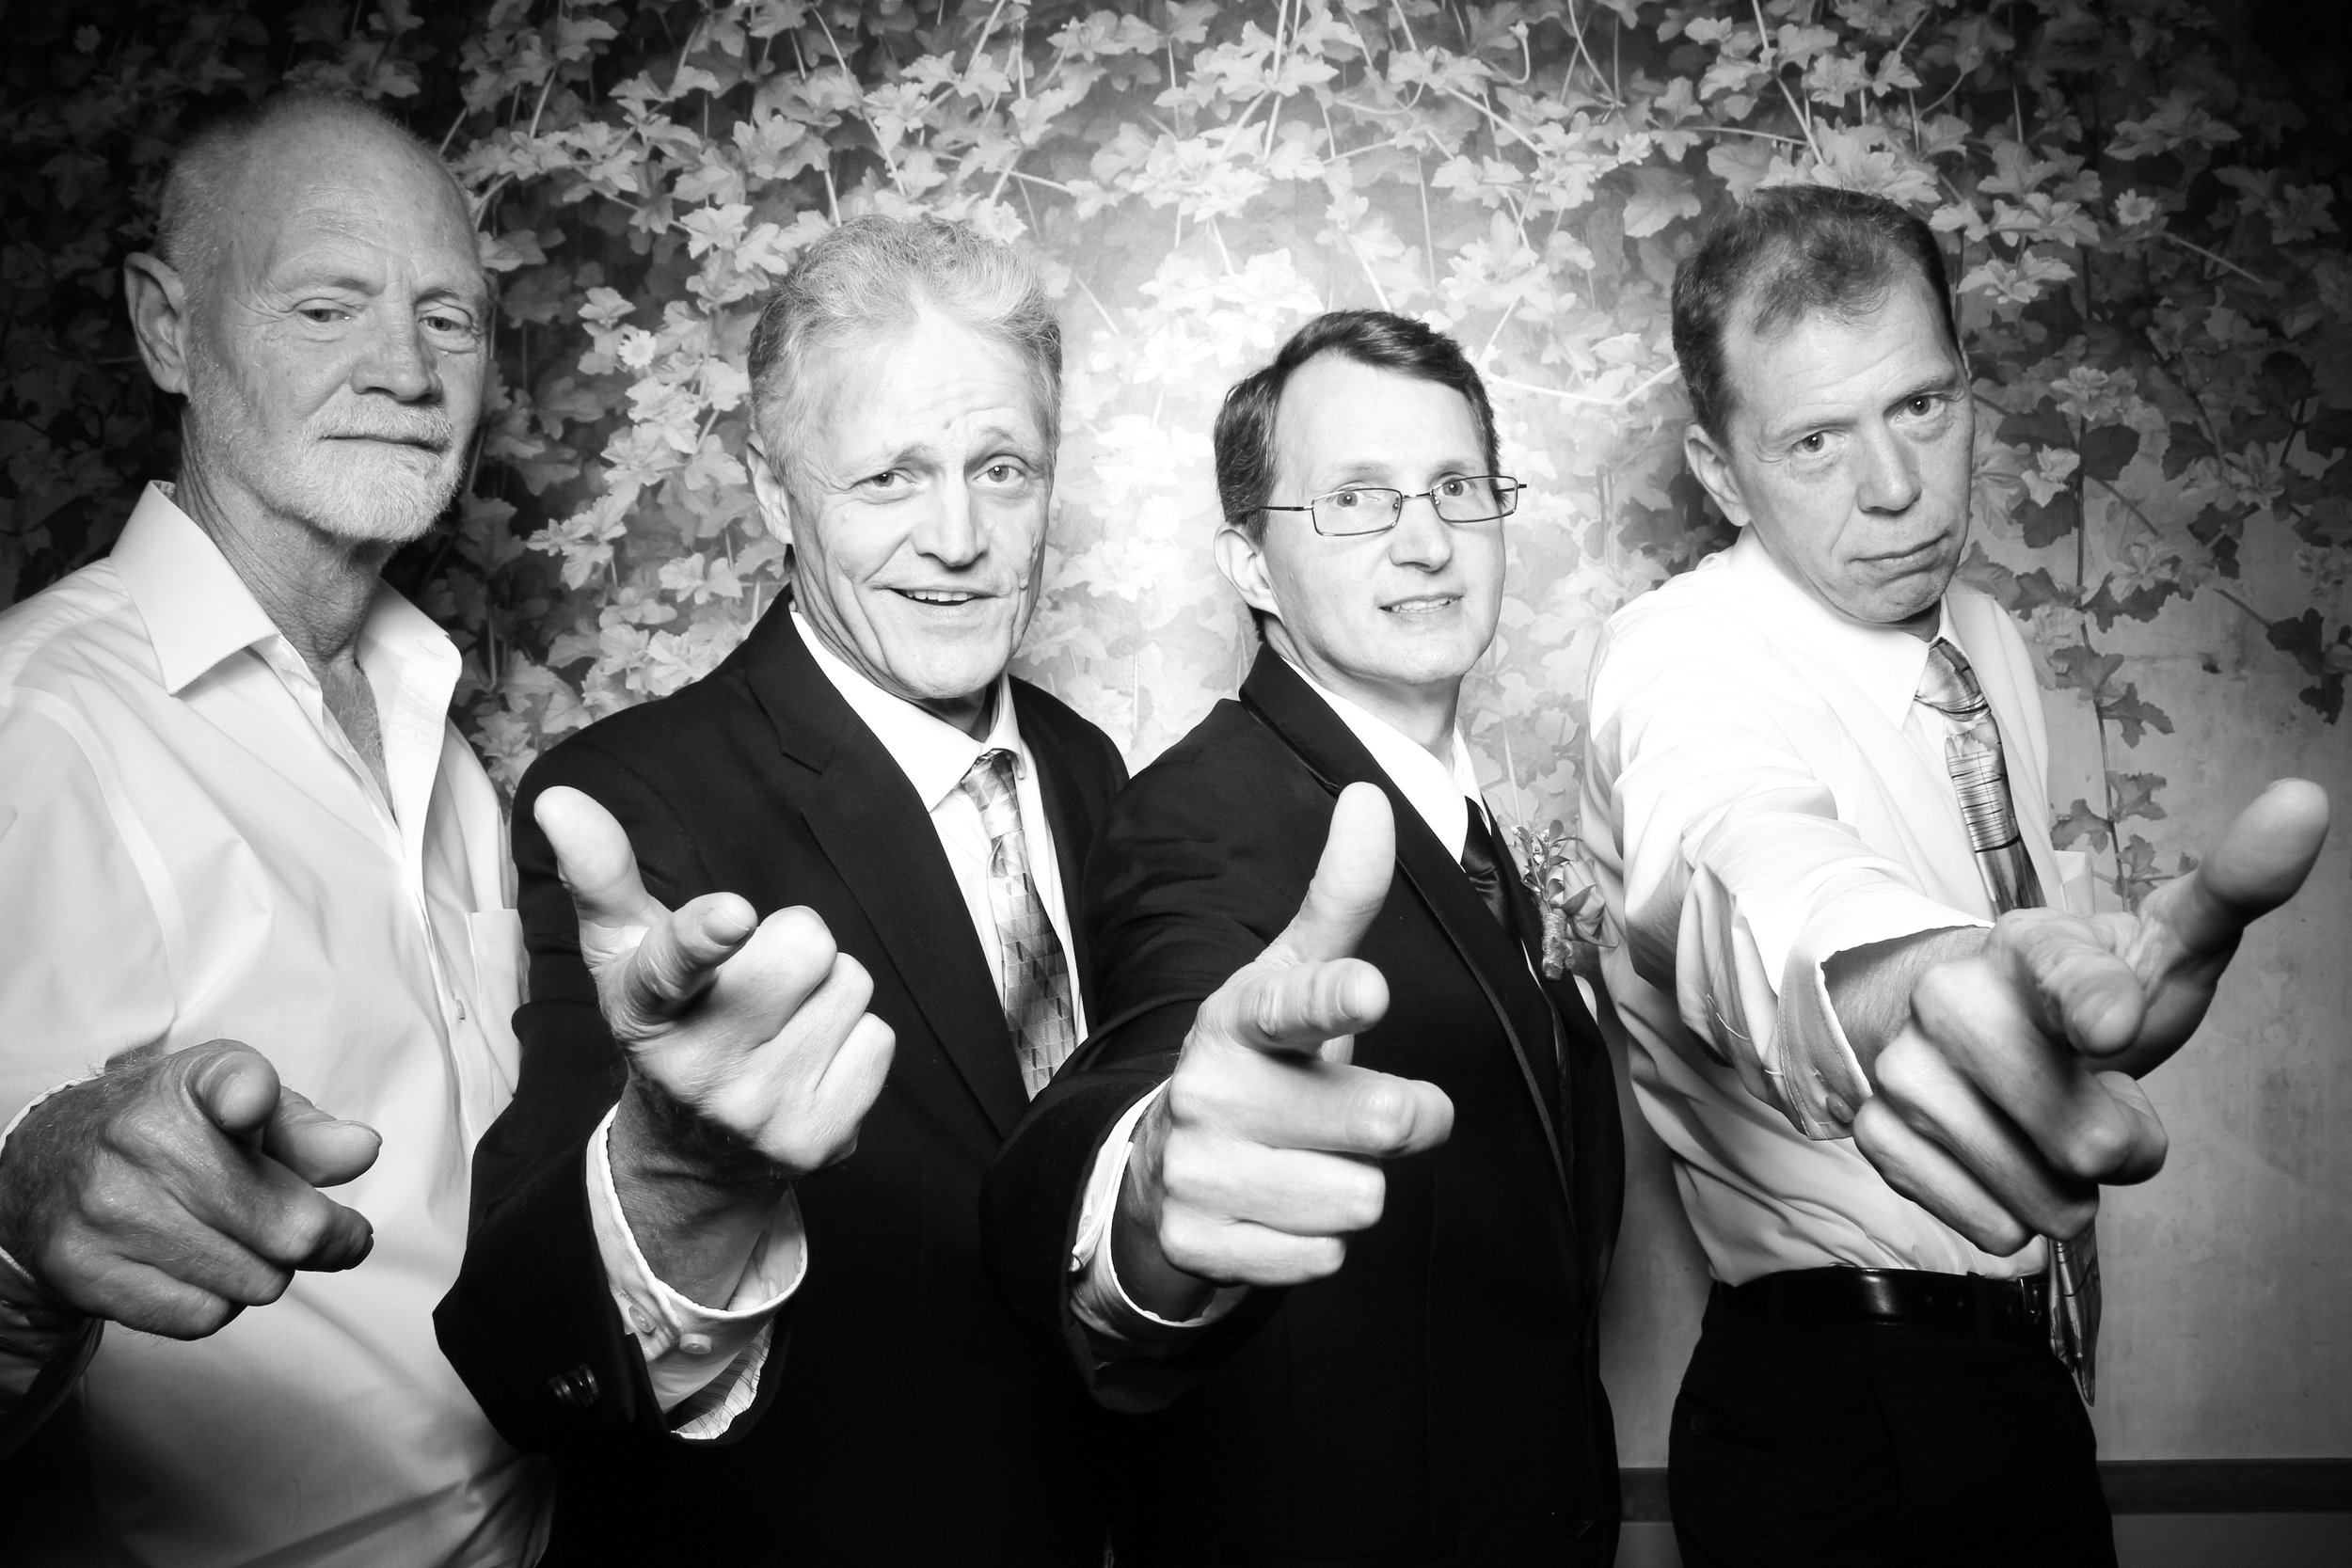 Randall_Oaks_Country_Club_Wedding_West_Dundee_Photo_Booth_14.jpg